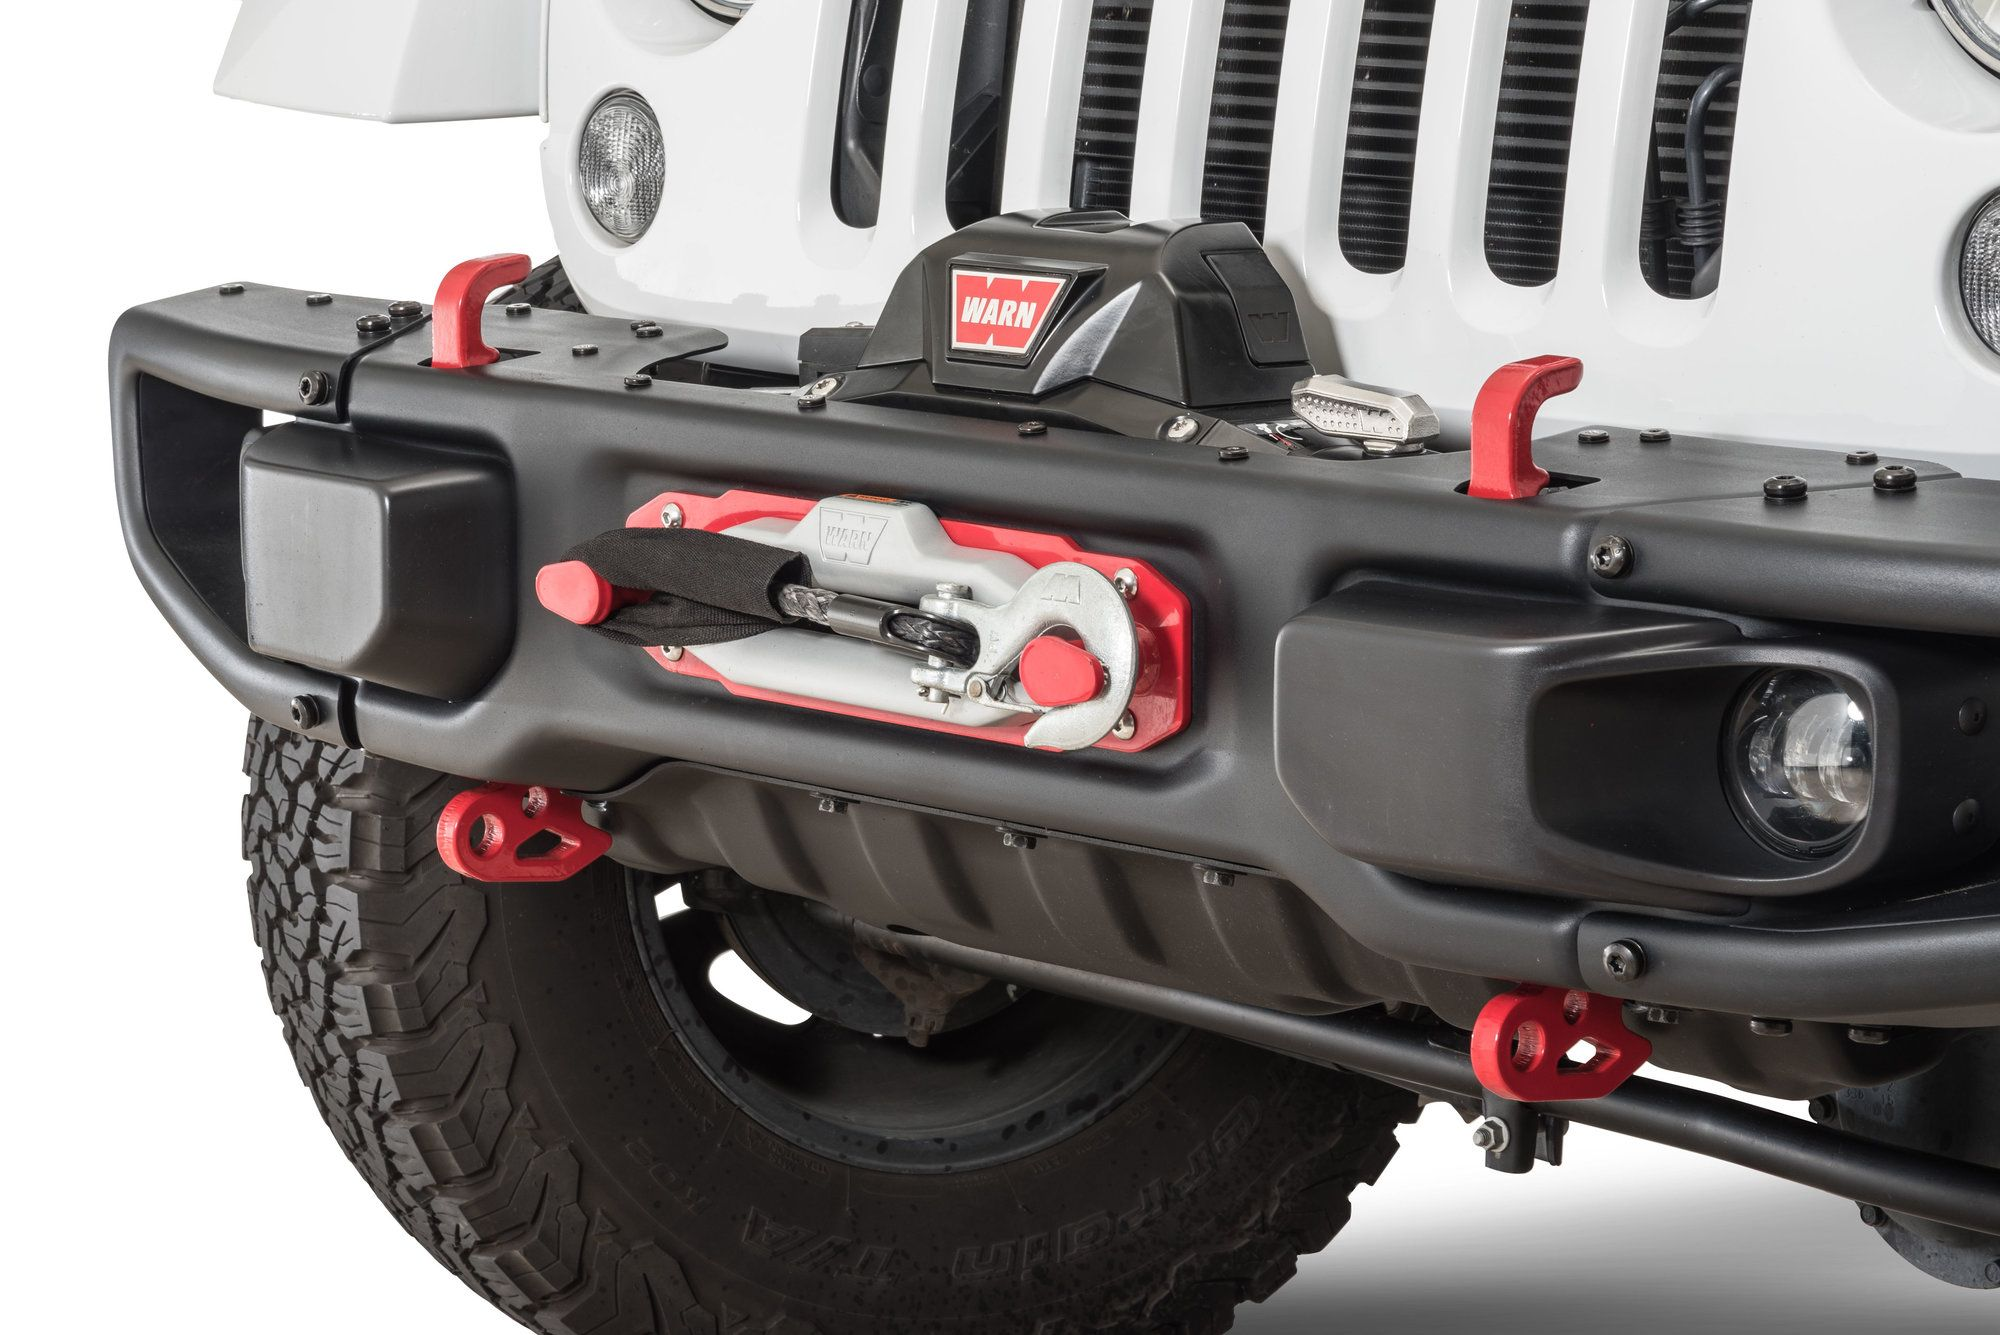 384c301dedb5 The Maximus-3 Winch plates are engineered to provide a strong and ...